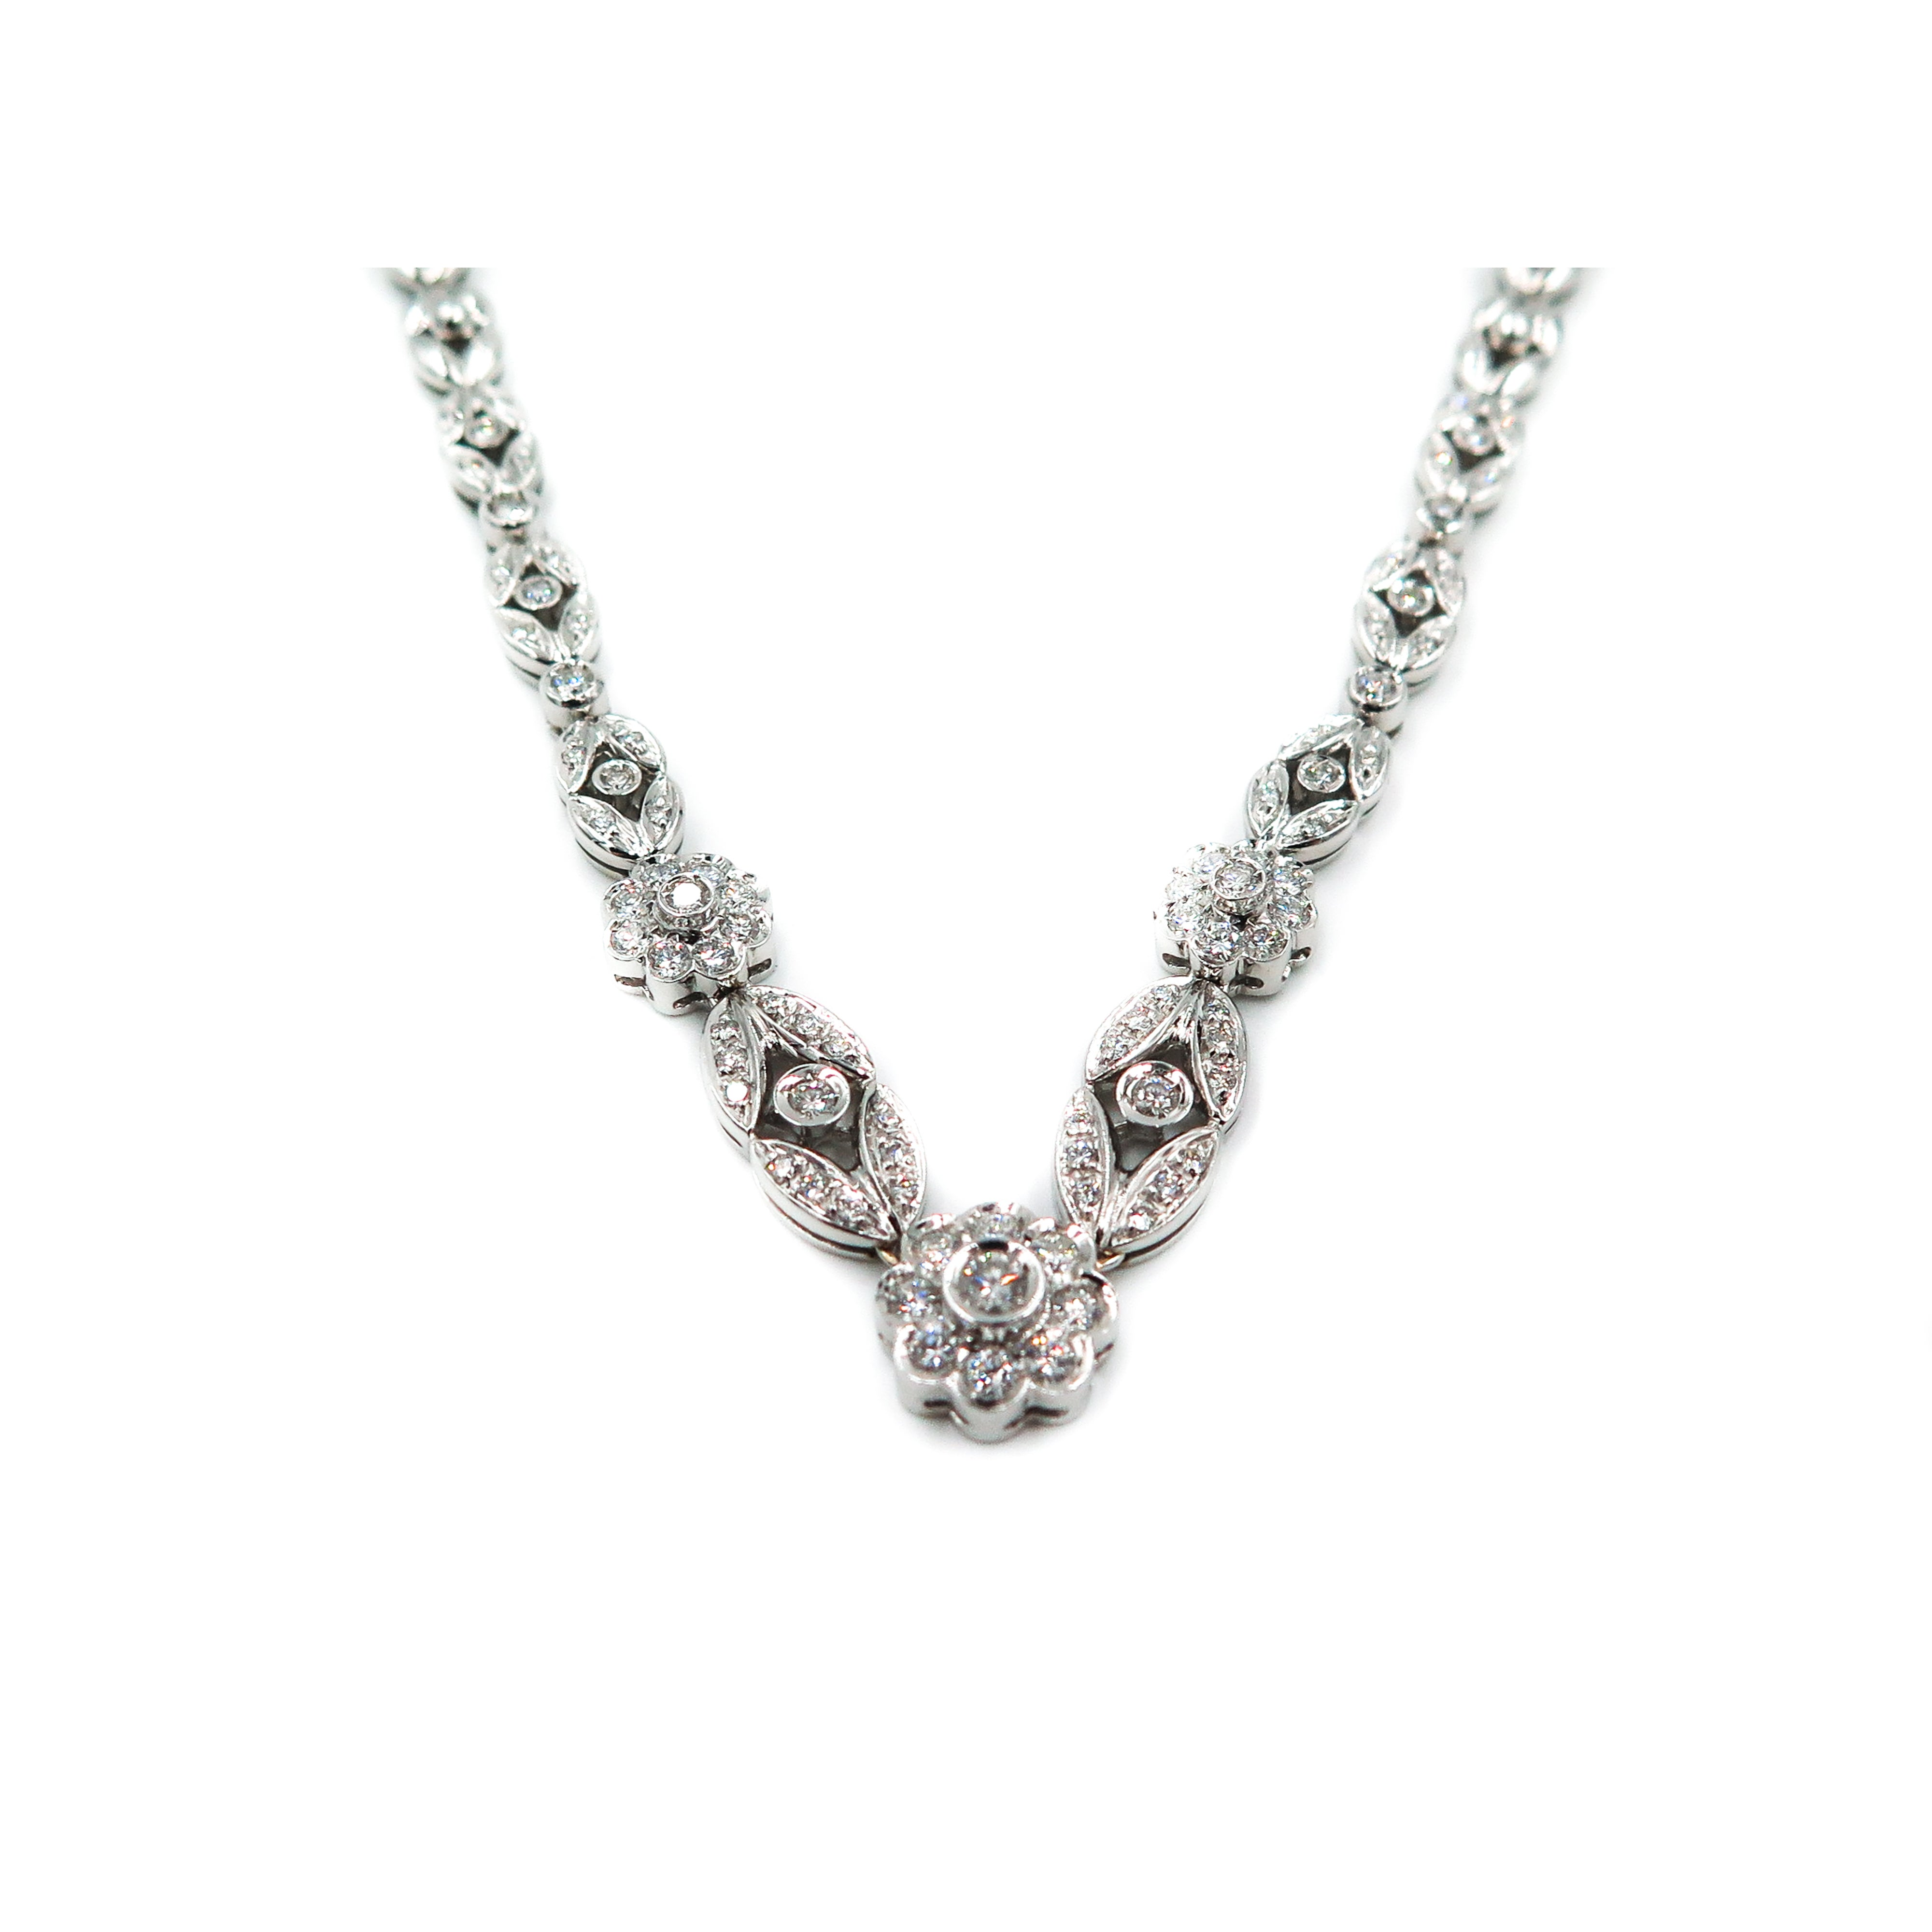 61c7d72abd270e White Gold Floral Diamond Necklace For Sale at 1stdibs